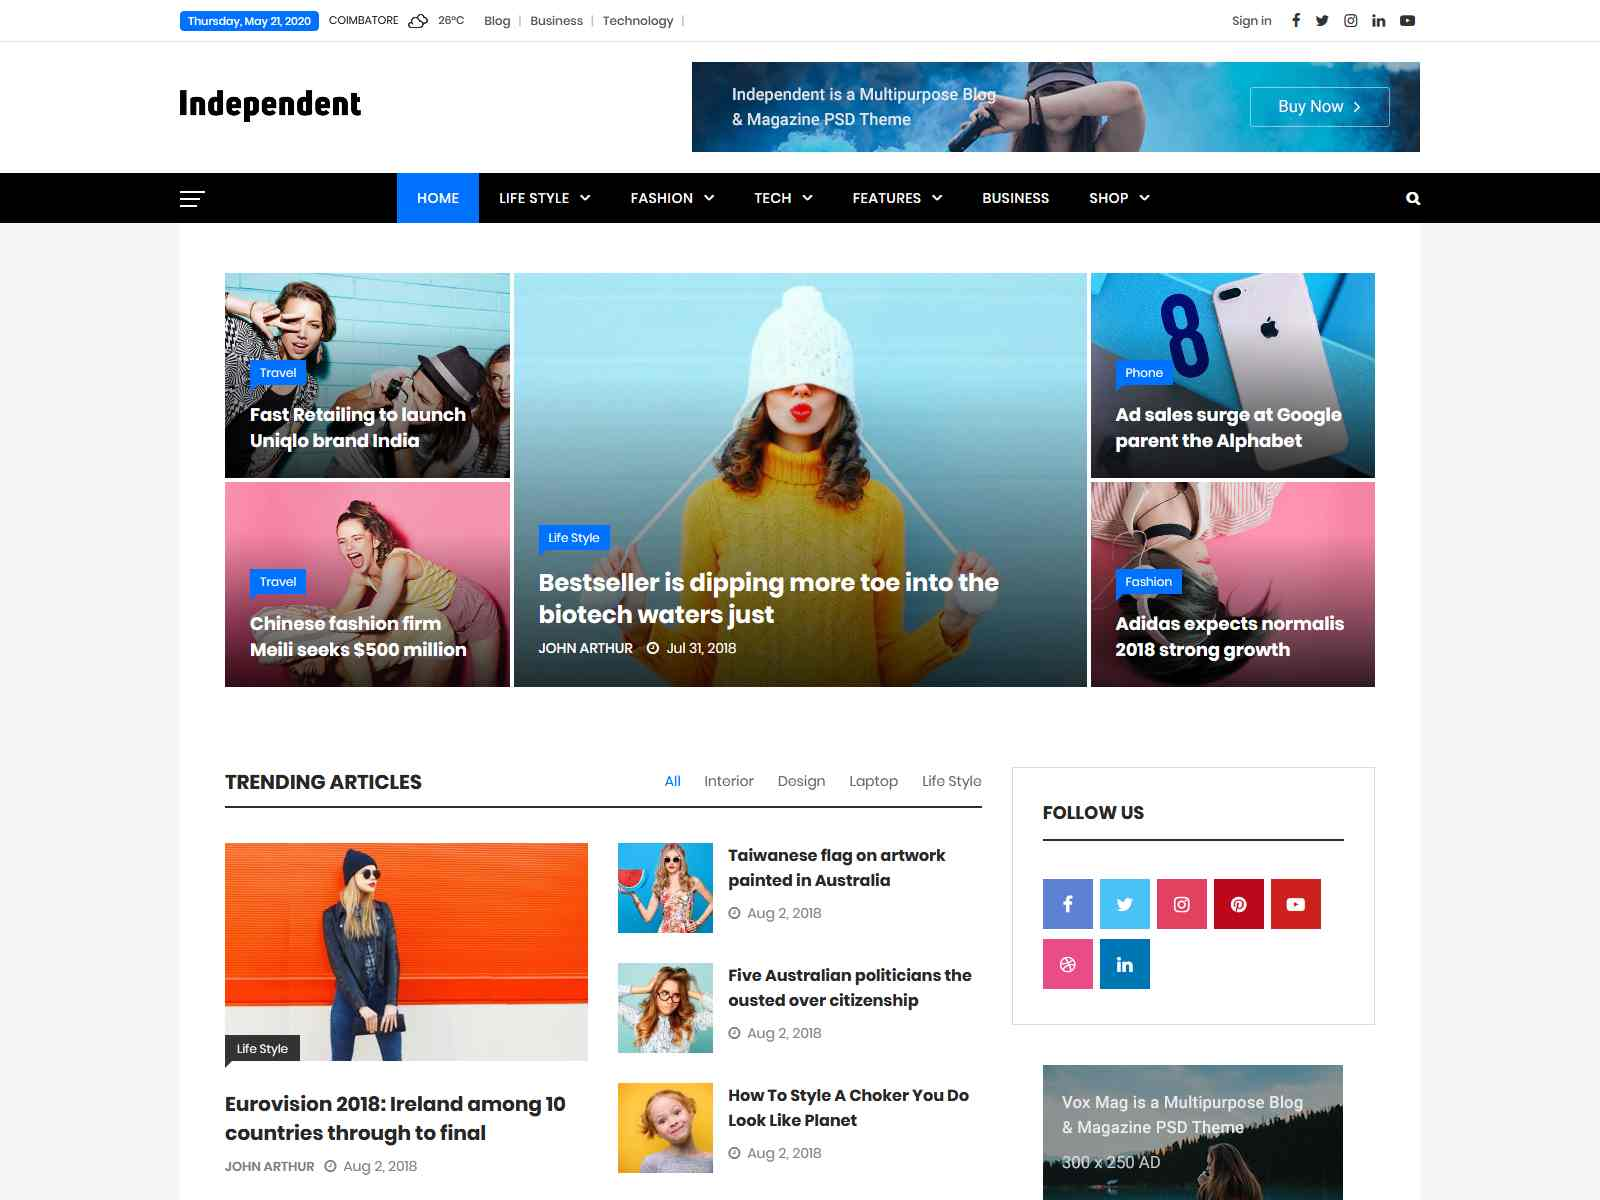 Independent - Multipurpose Blog & Magazine Theme